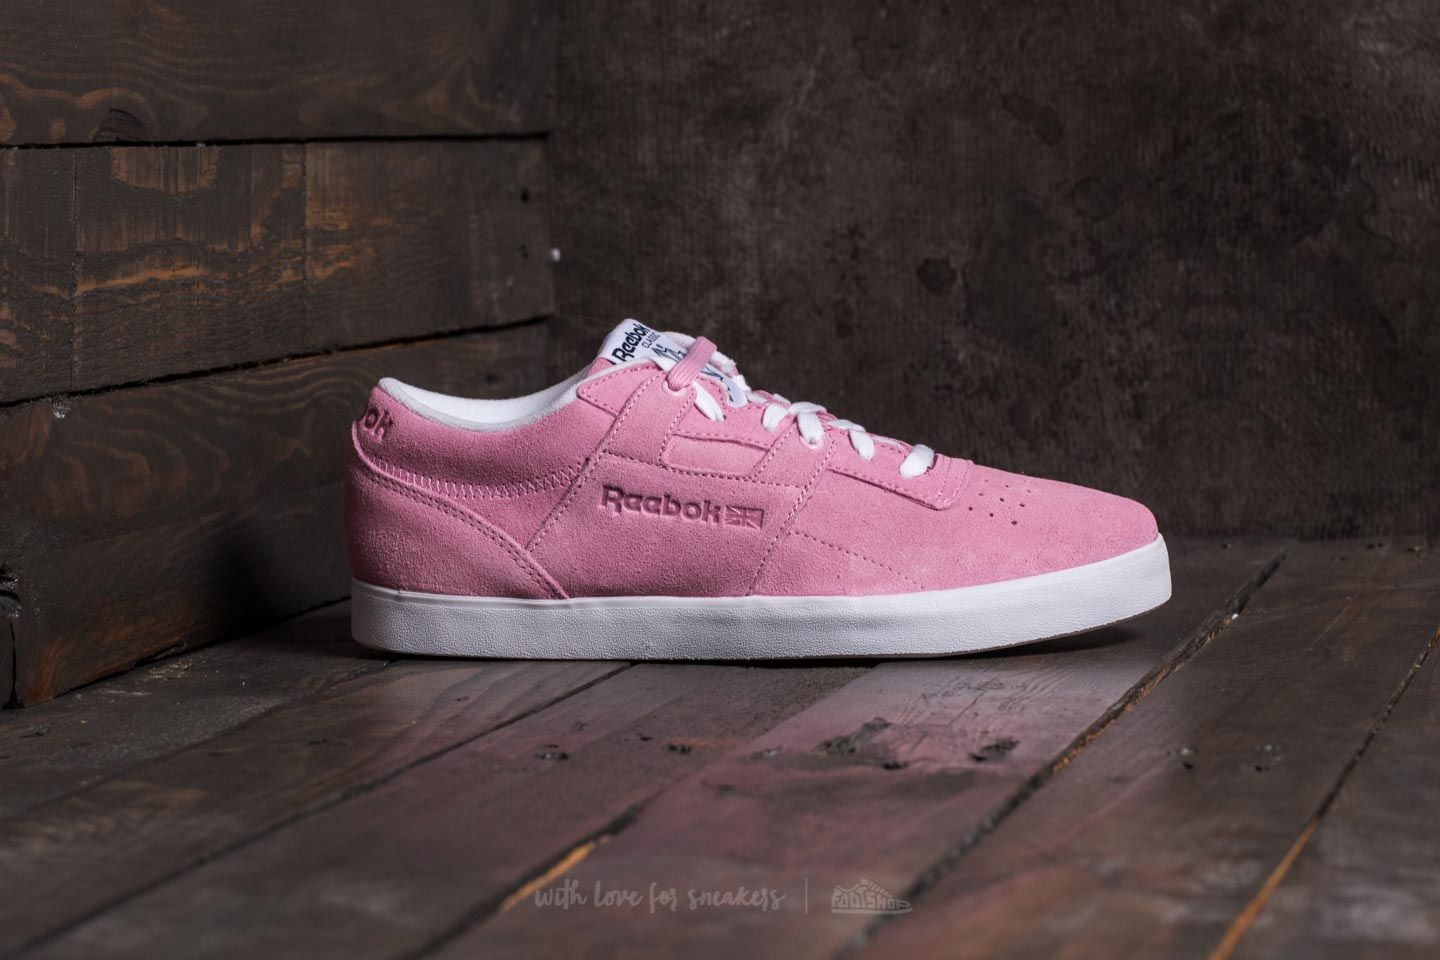 c82698cdcef Reebok Workout Clean FVS Billys Blushy Pink  Collegiate Navy  White at a  great price